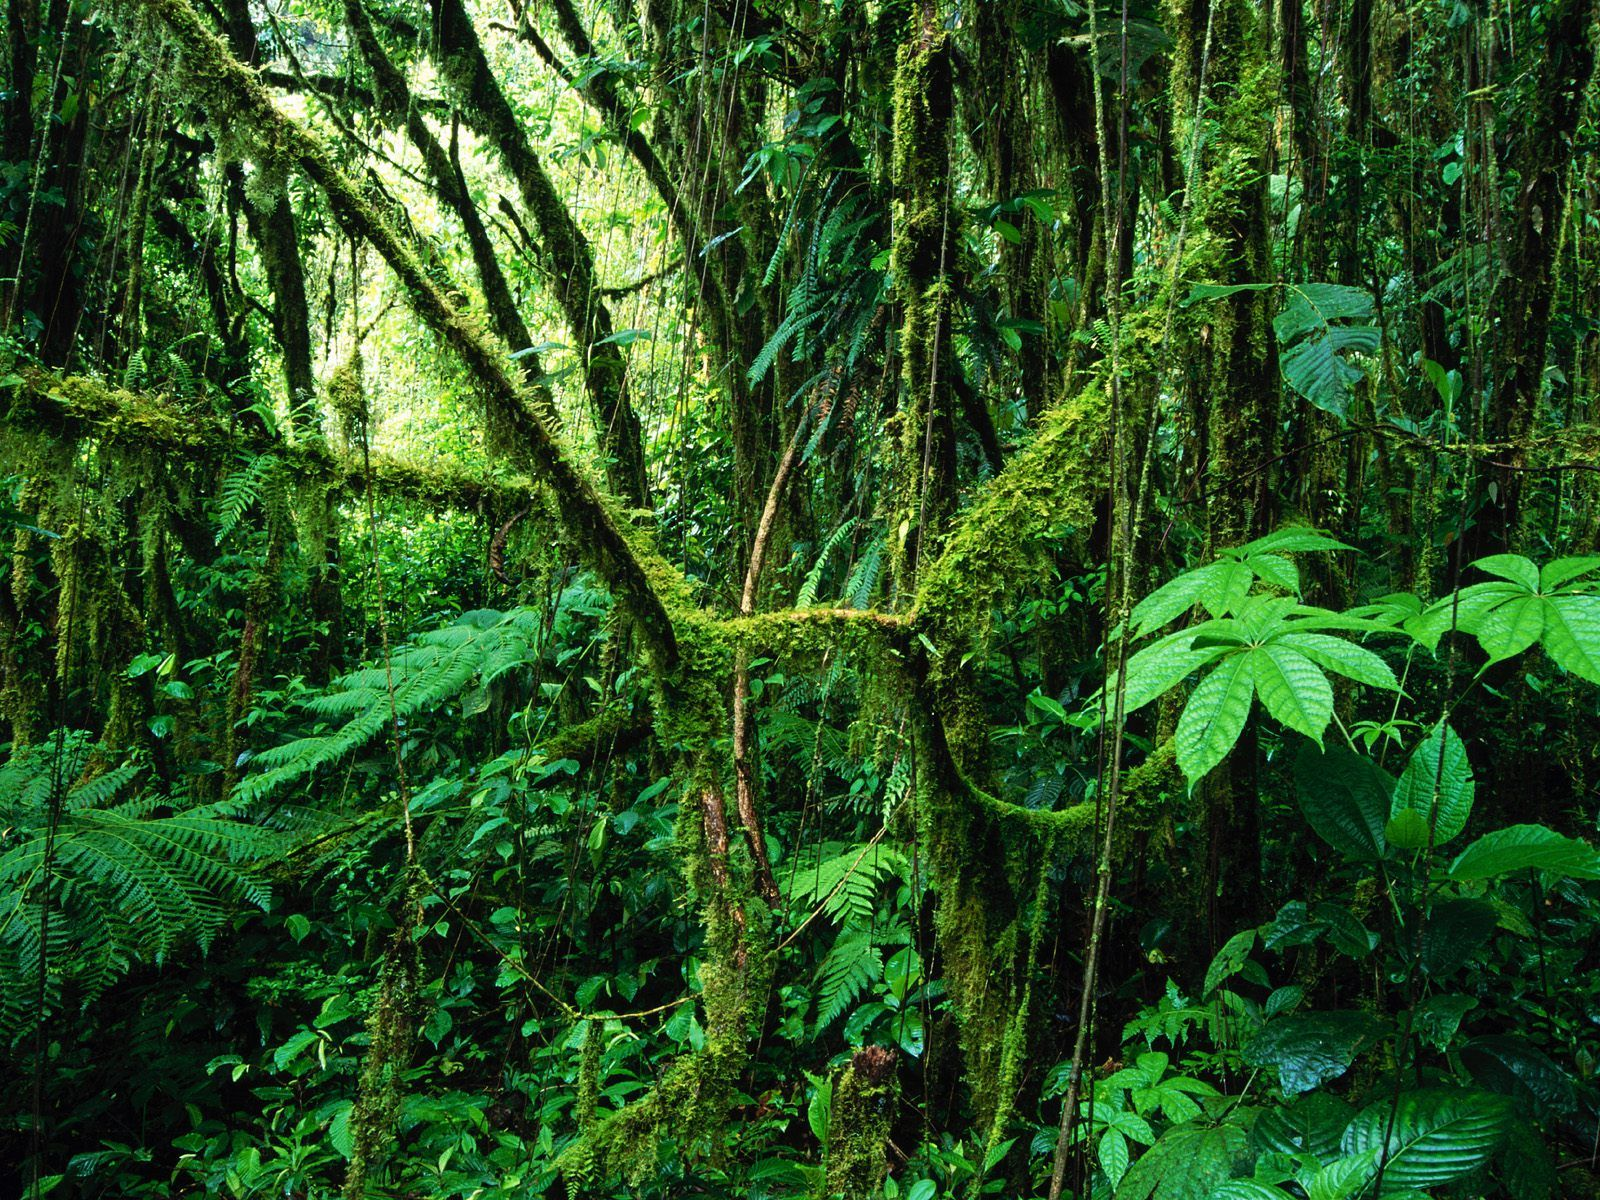 Rainforest wallpaper hd